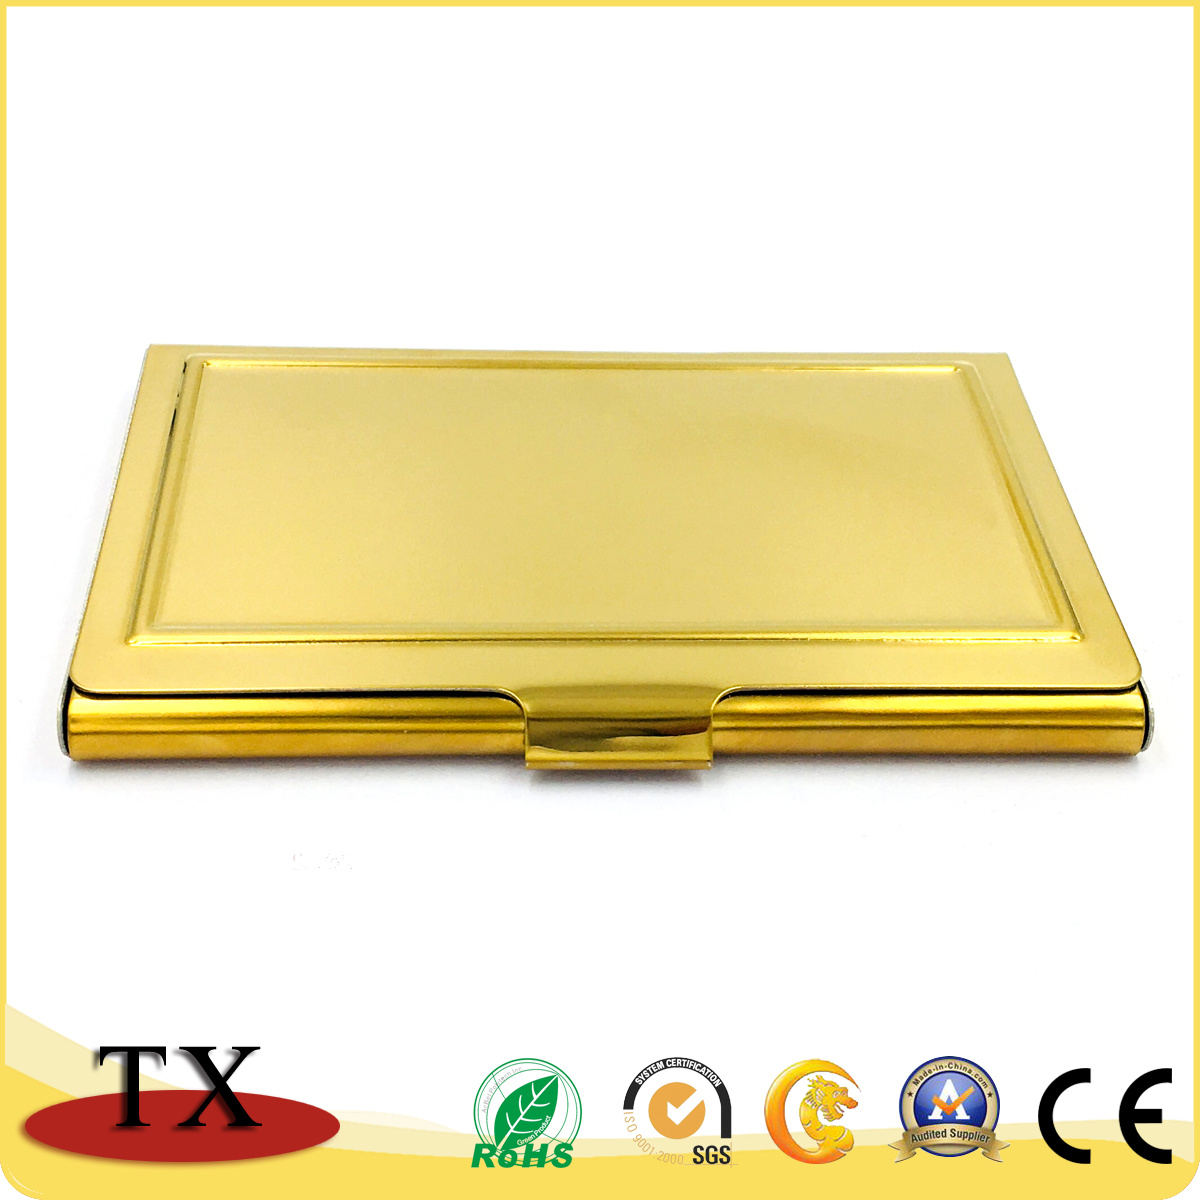 China Gold Stainless Steel Business Card Holder for Gift Items ...